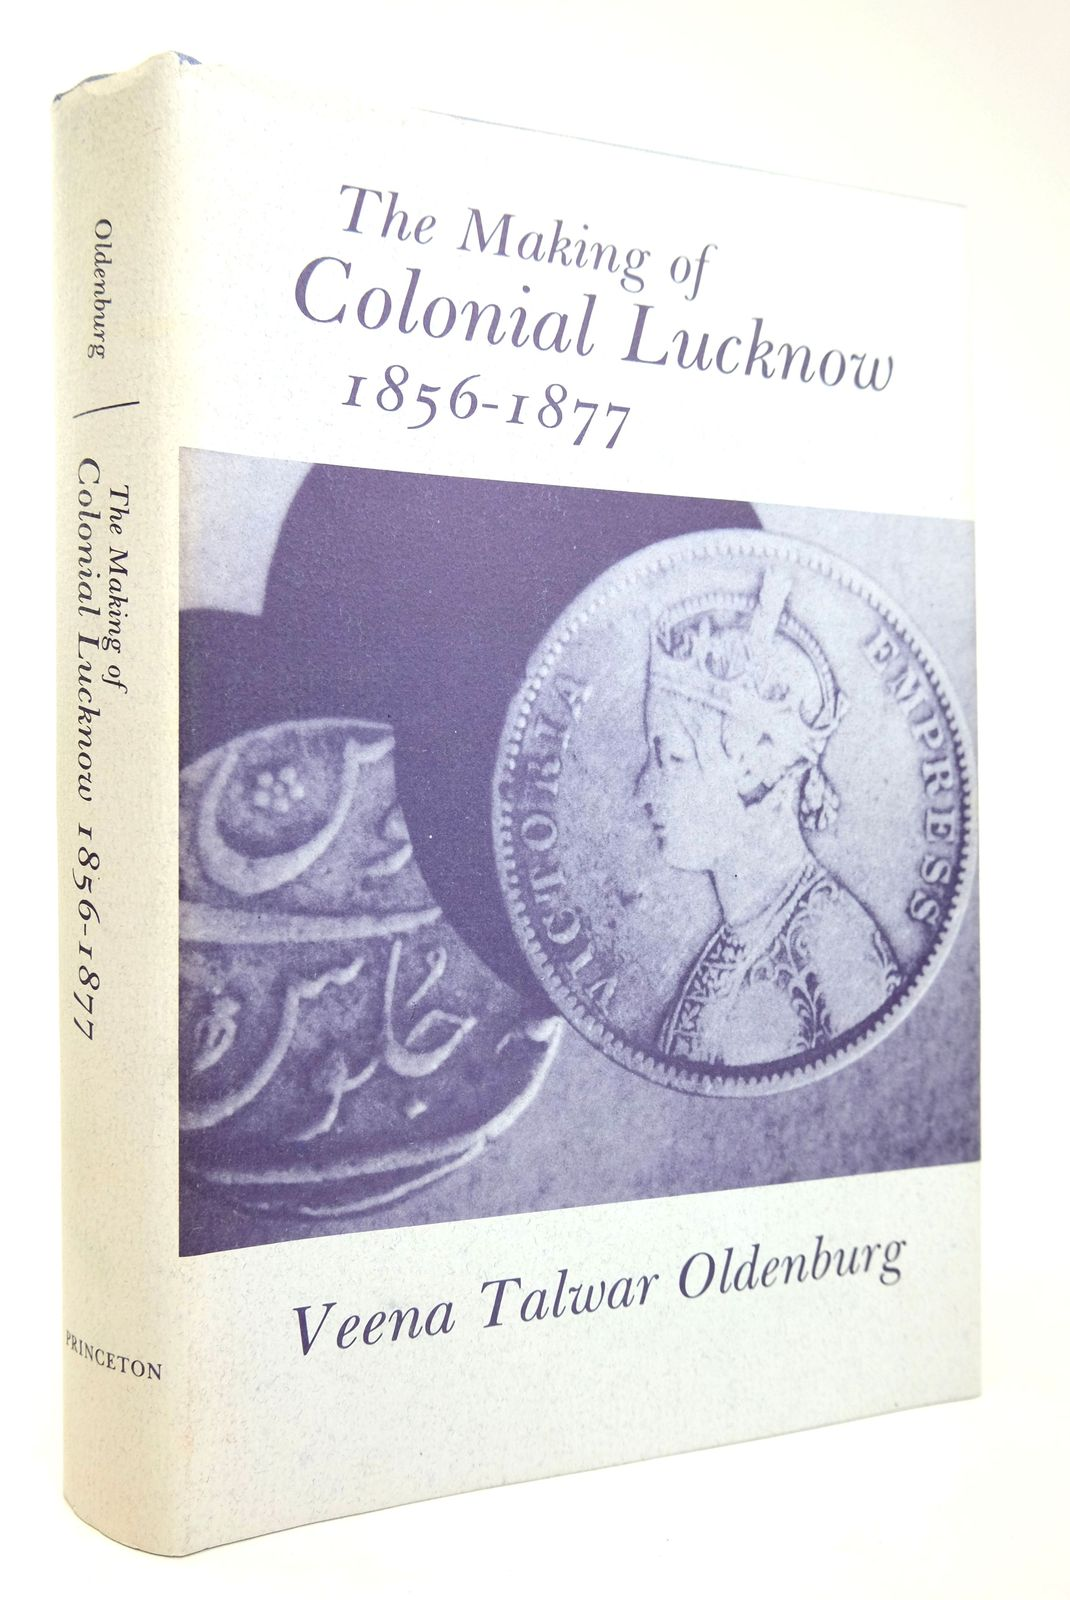 Photo of THE MAKING OF COLONIAL LUCKNOW 1856-1877- Stock Number: 1818898